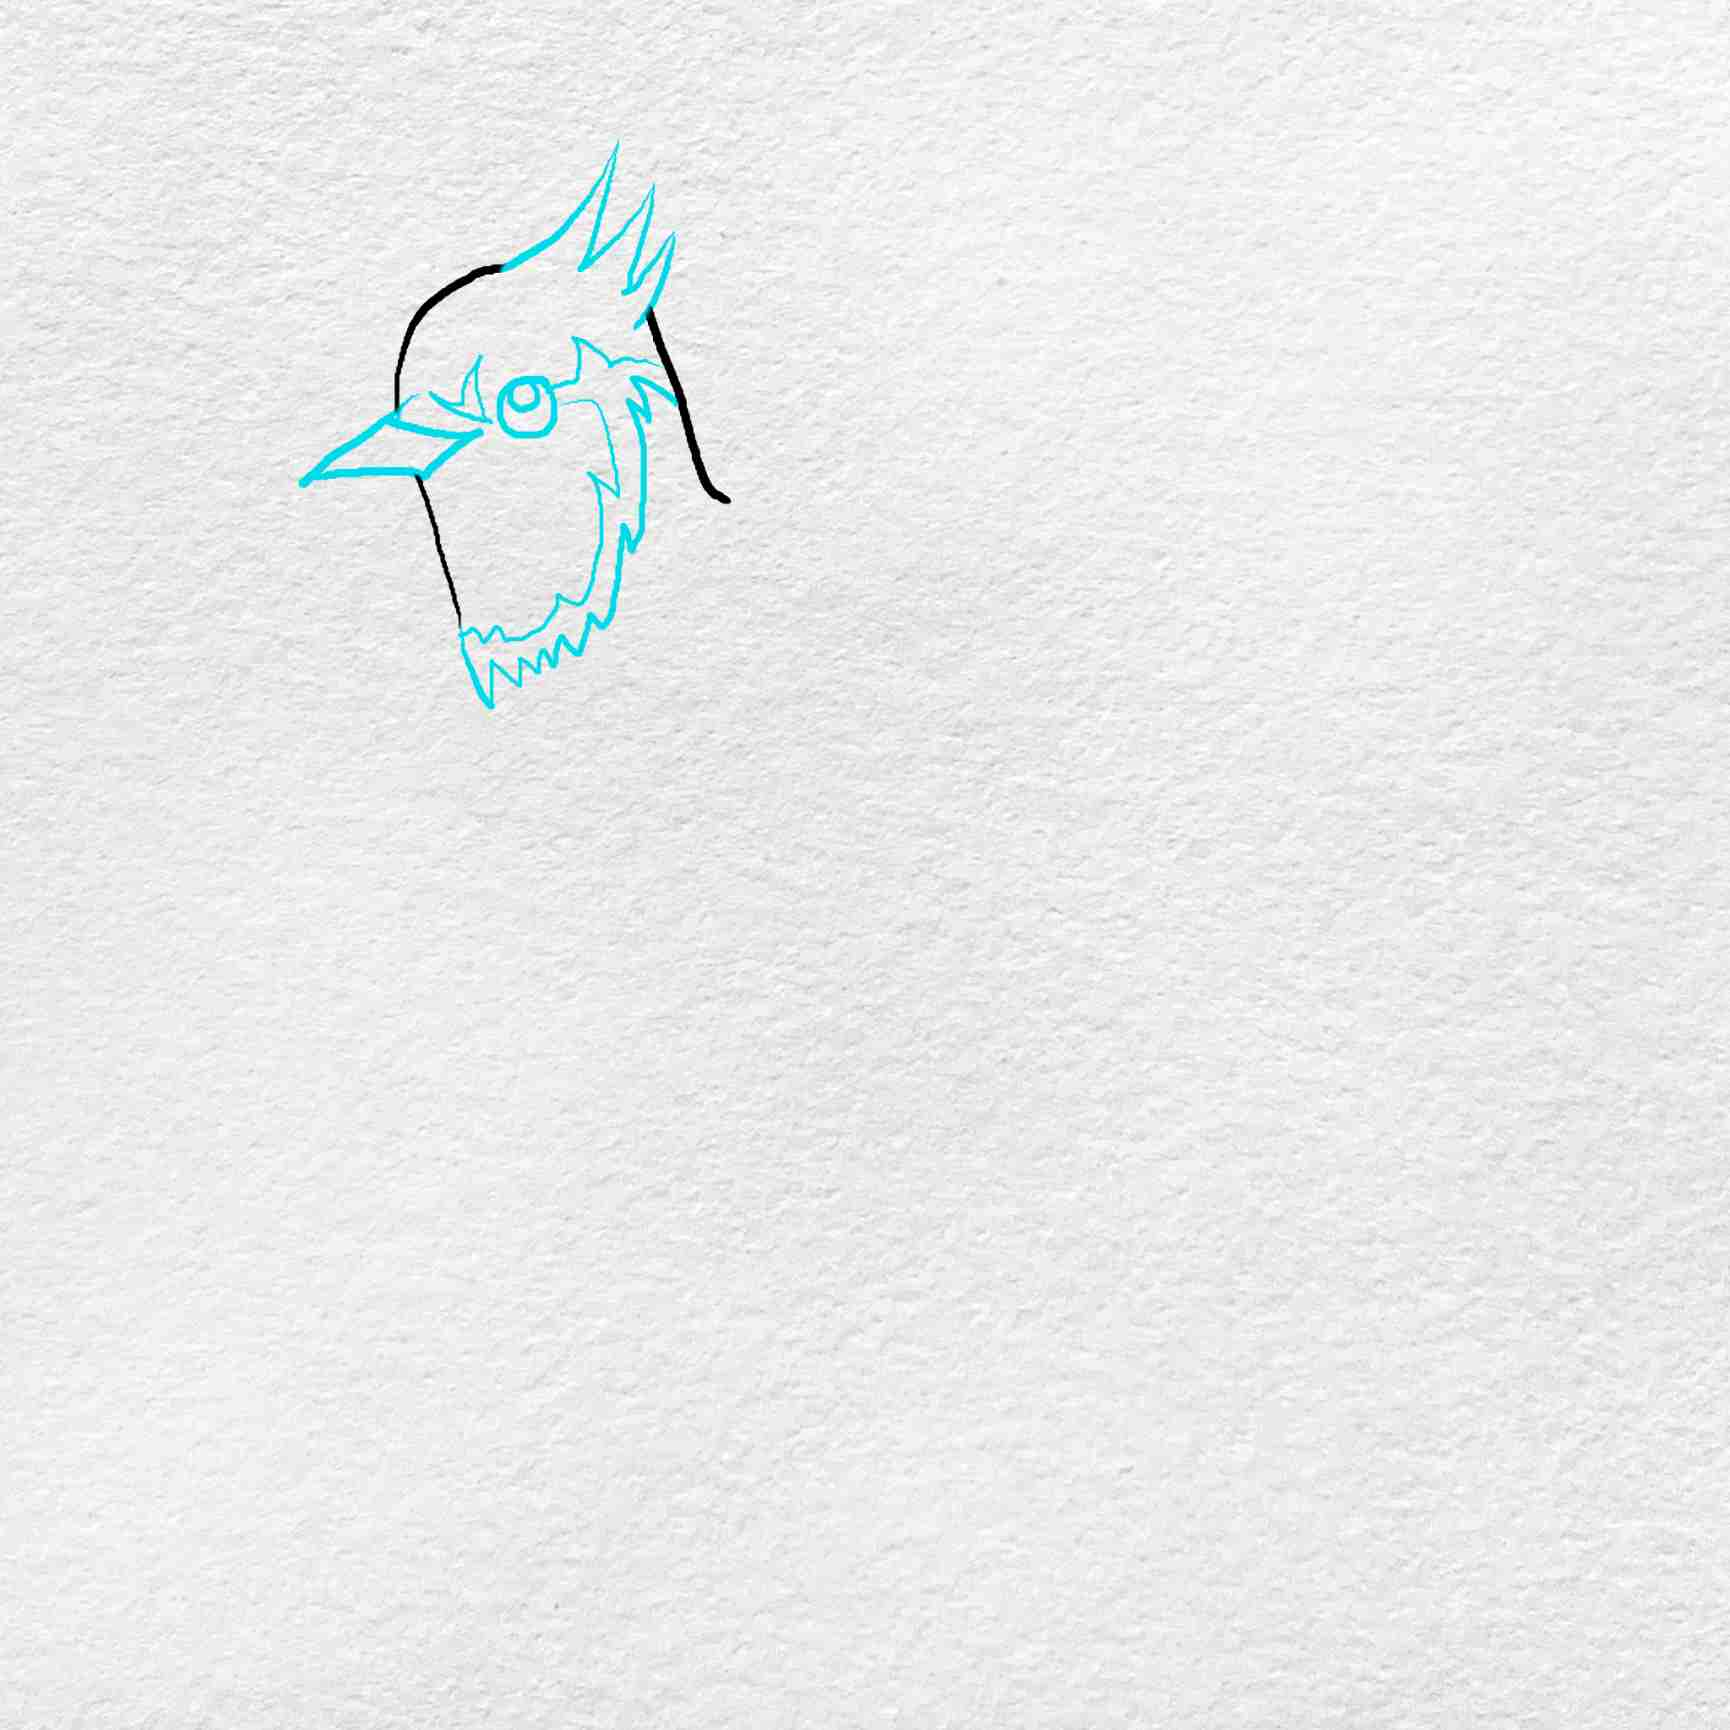 How To Draw A Blue Jay: Step 2